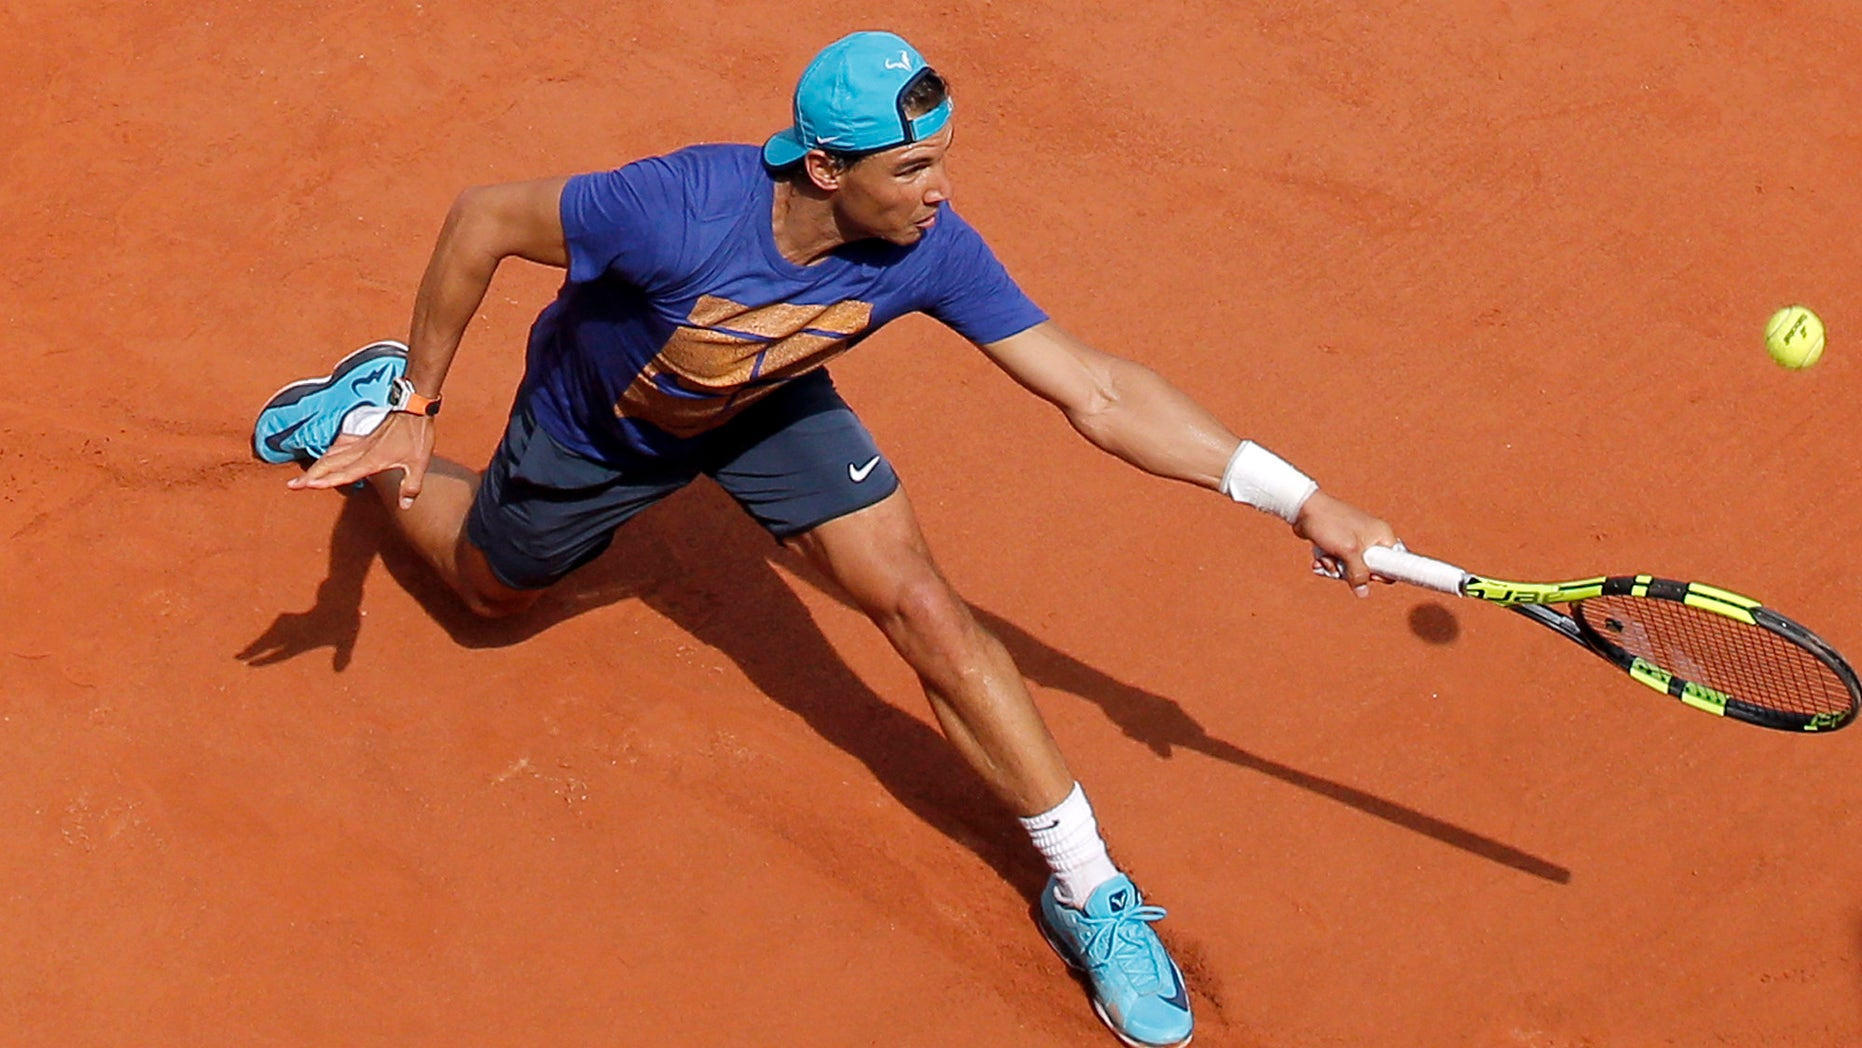 Spain's Rafael Nadal returns the ball during a training session of the French Open tennis tournament at the Roland Garros stadium, in Paris, Saturday, May 21, 2016 . The French Open starts Sunday May 22. (AP Photo/Christophe Ena)